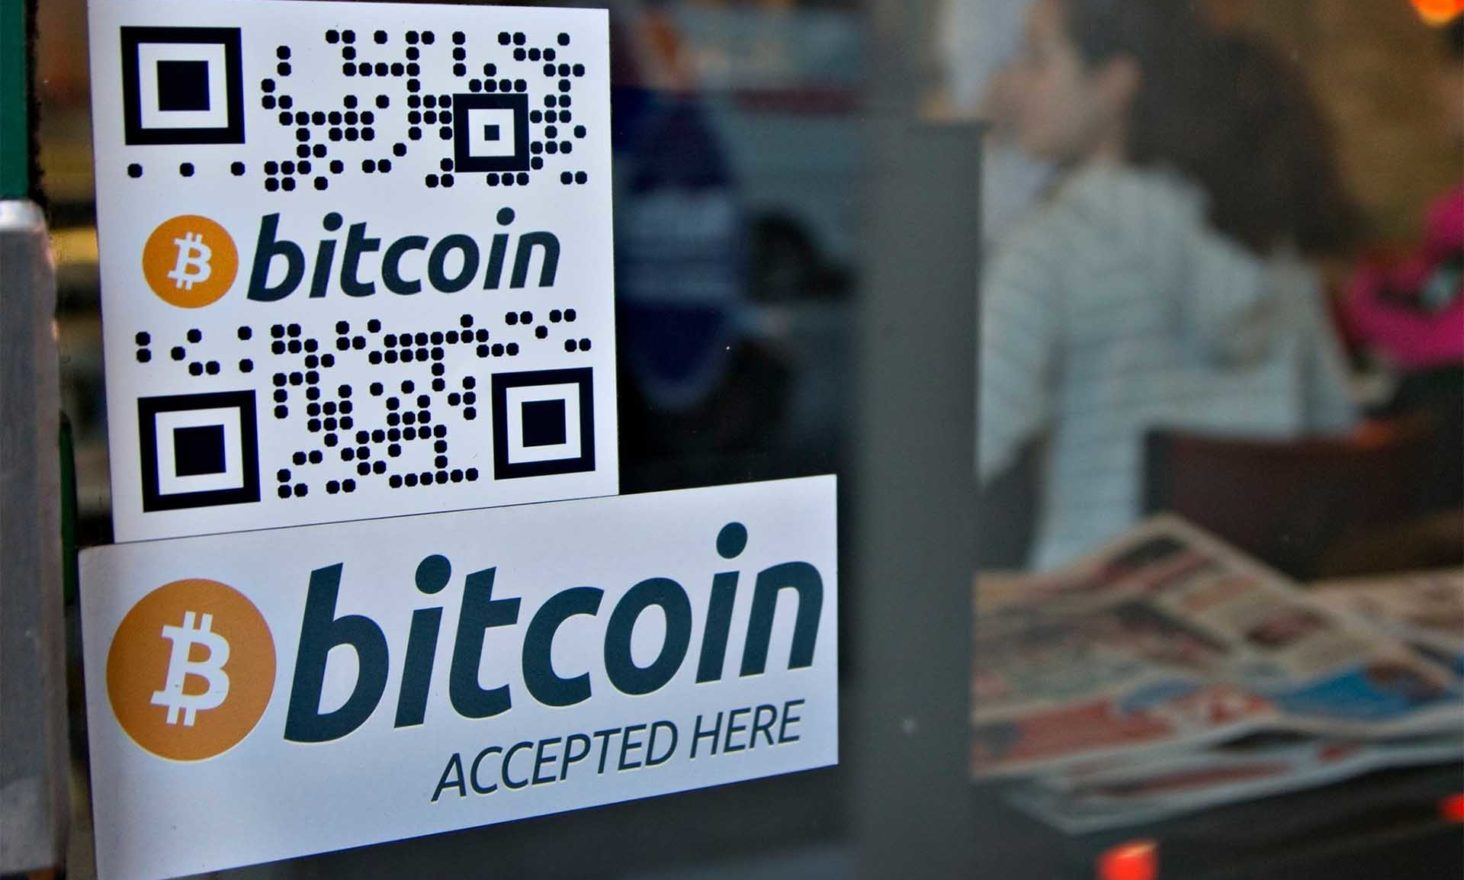 According to a new study, more than 50 percent of retailers utilizing Square Inc.'s checkout technology would be willing to accept Bitcoin (BTC) as a form of payment.